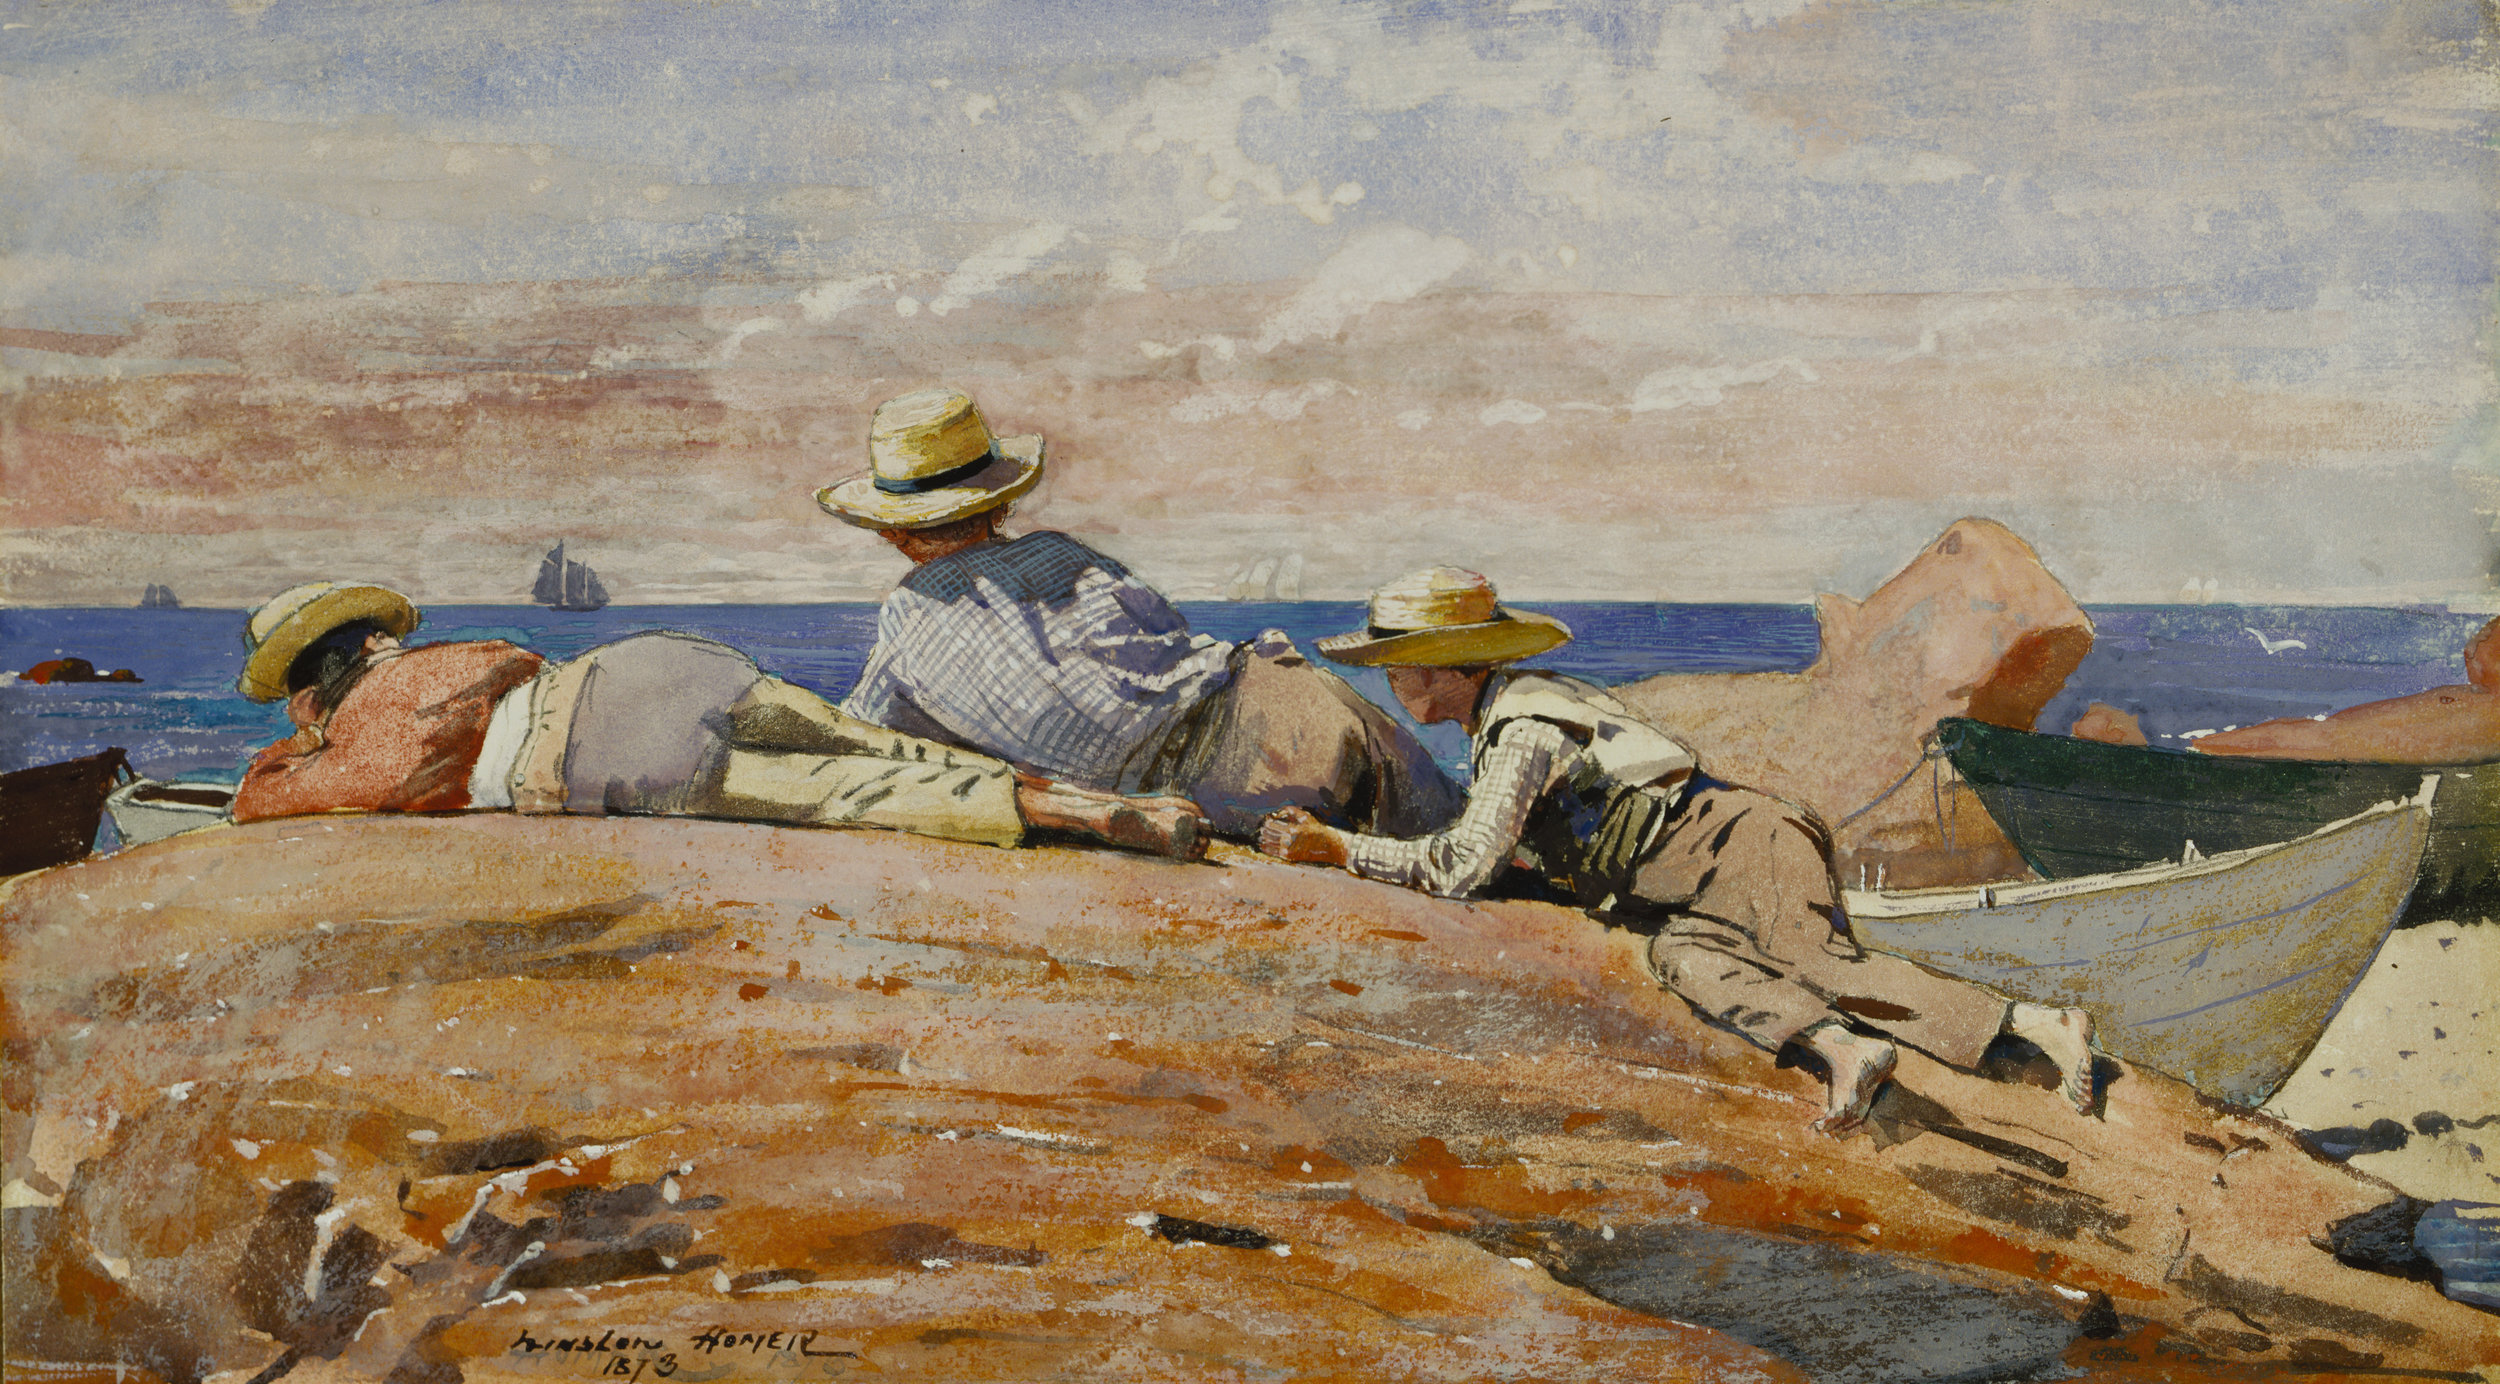 Winslow Homer (1836-1910),  Three Boys on the Shore,  1873. Gouache and watercolor on paper mounted on board. Daniel J. Terra Collection.